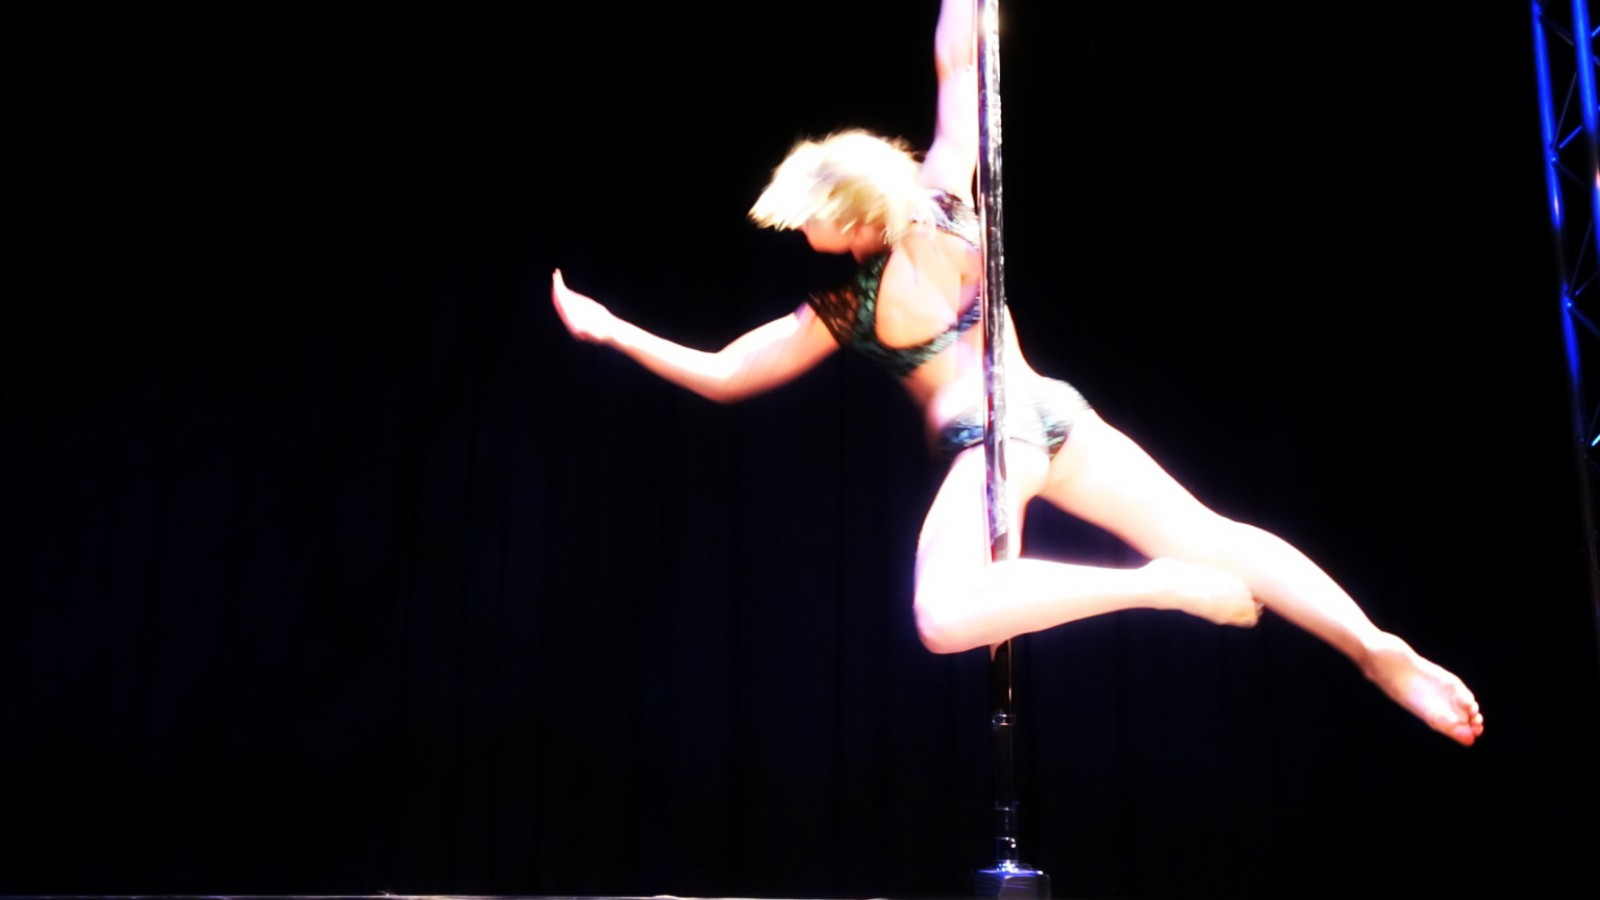 Pole dance photo